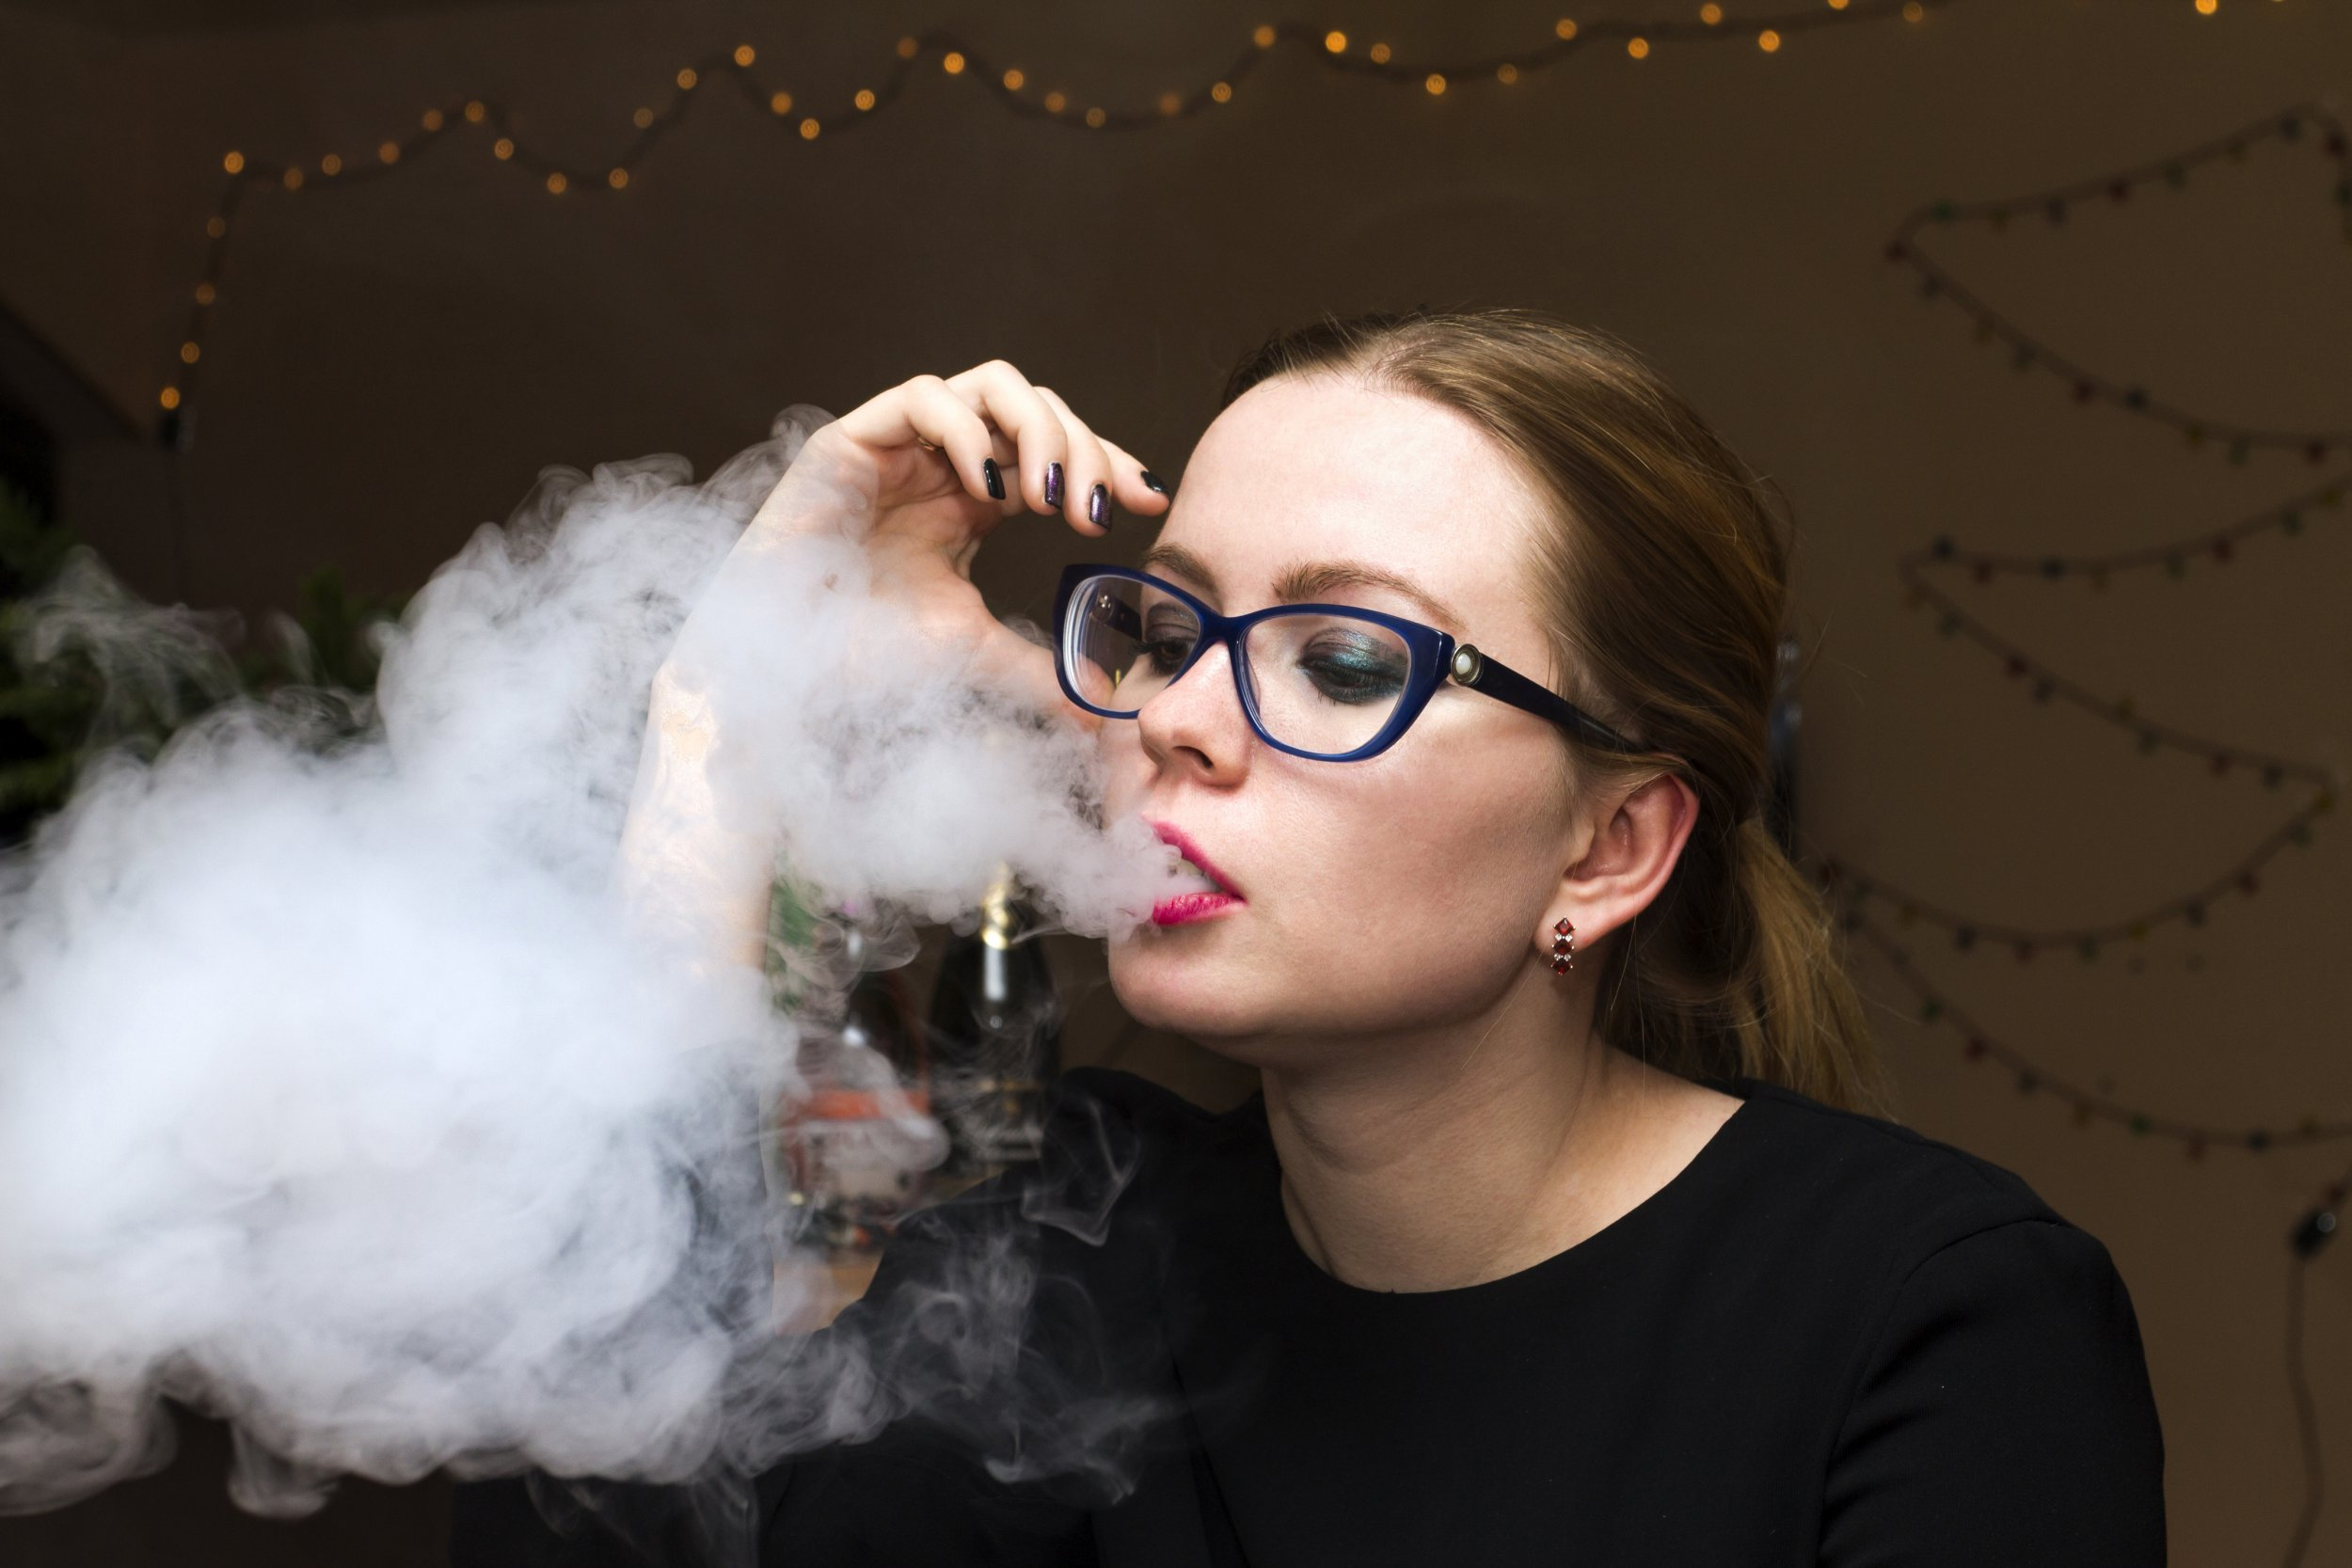 Vape girl with red lips in black dress; Shutterstock ID 547005034; Purchase Order: -